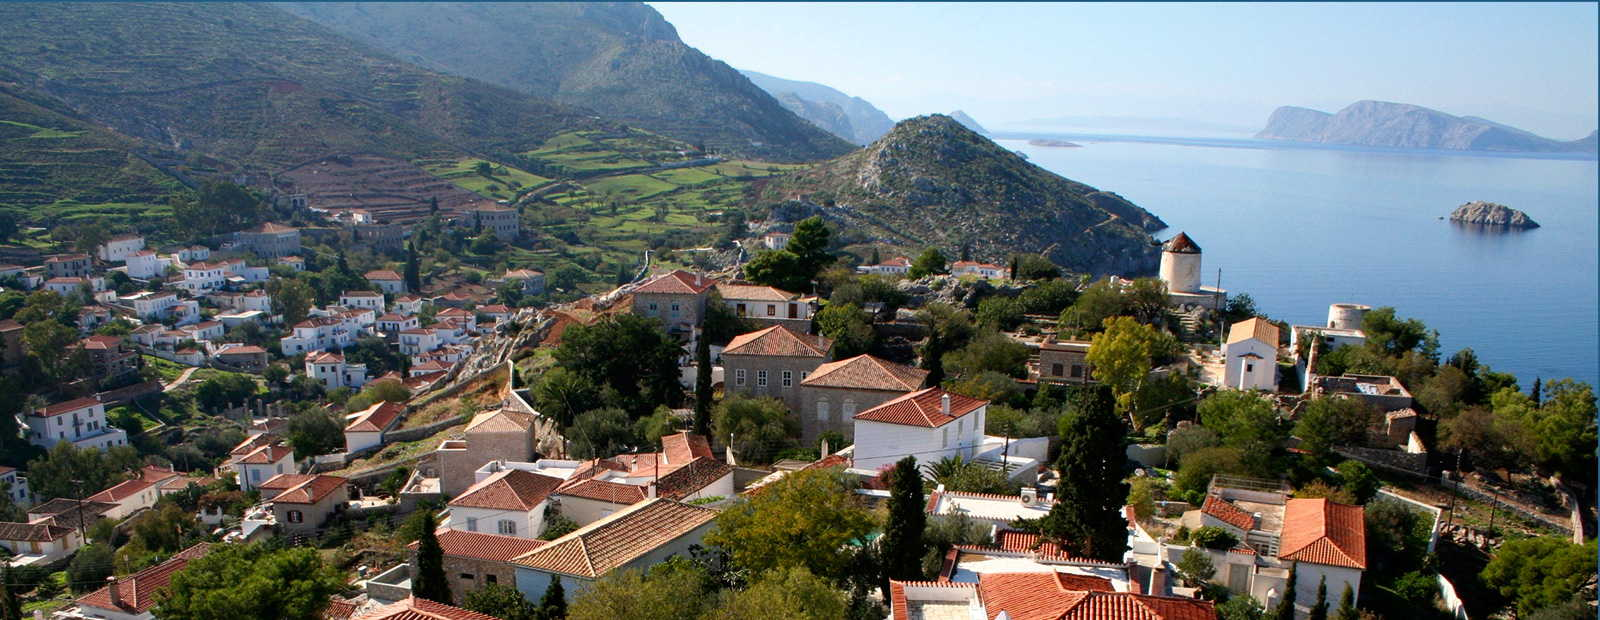 Luxurious holiday homes on the Saronic Islands